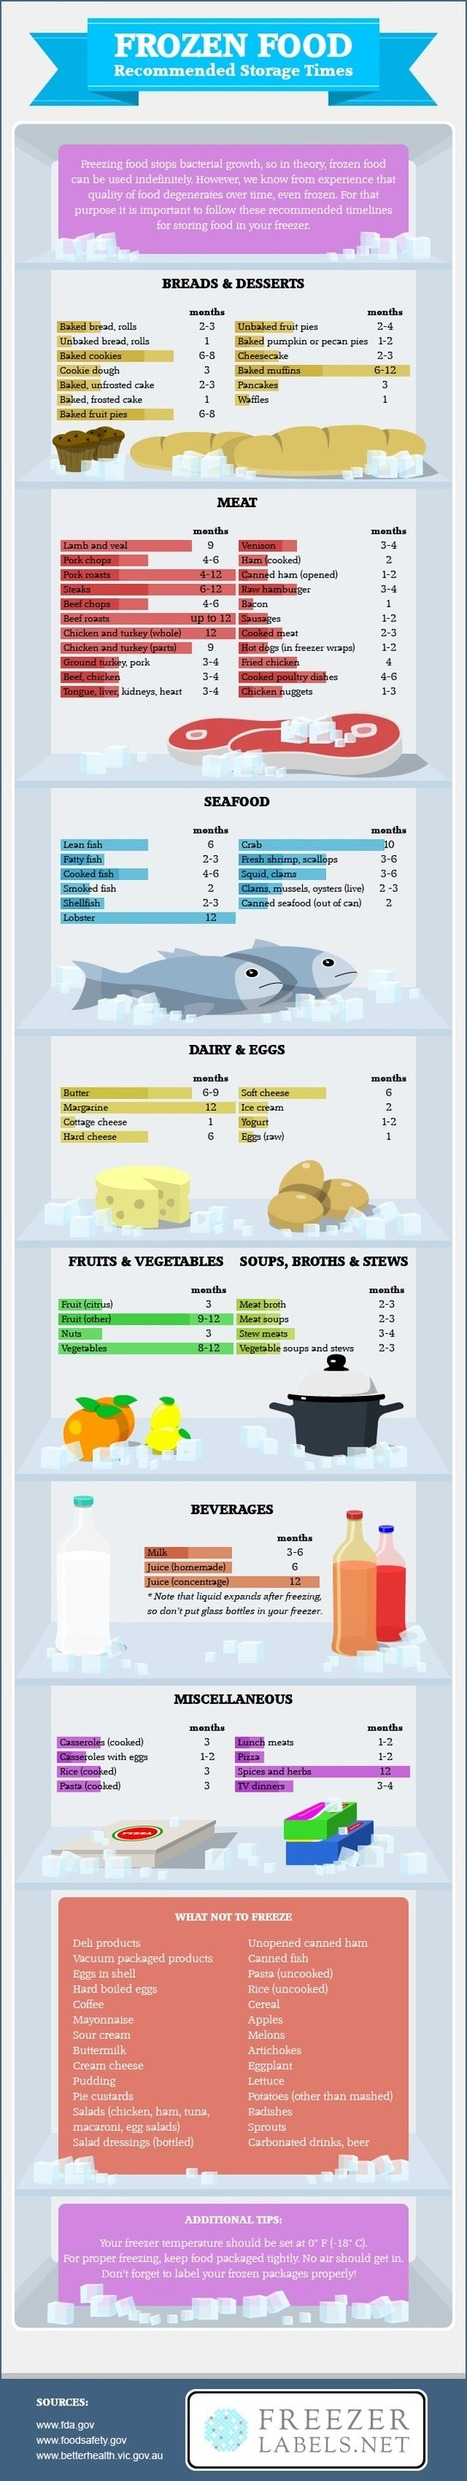 Complete Study: What type of Meals can you store in Freezer? | All Infographics | Scoop.it